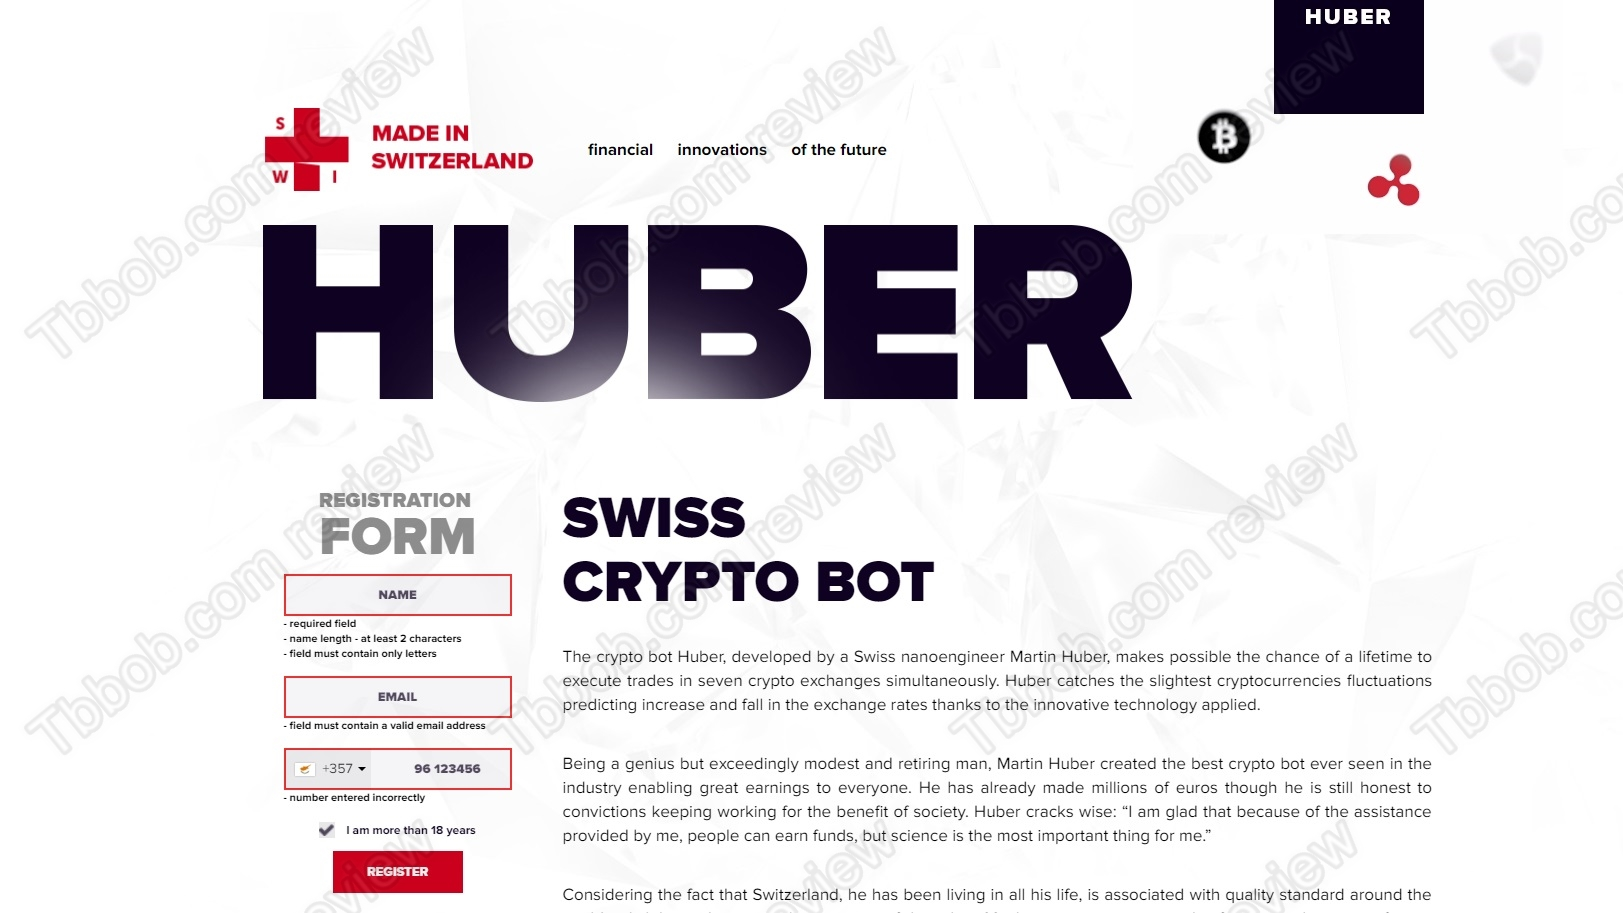 Swiss endorse cryptocurrency scam